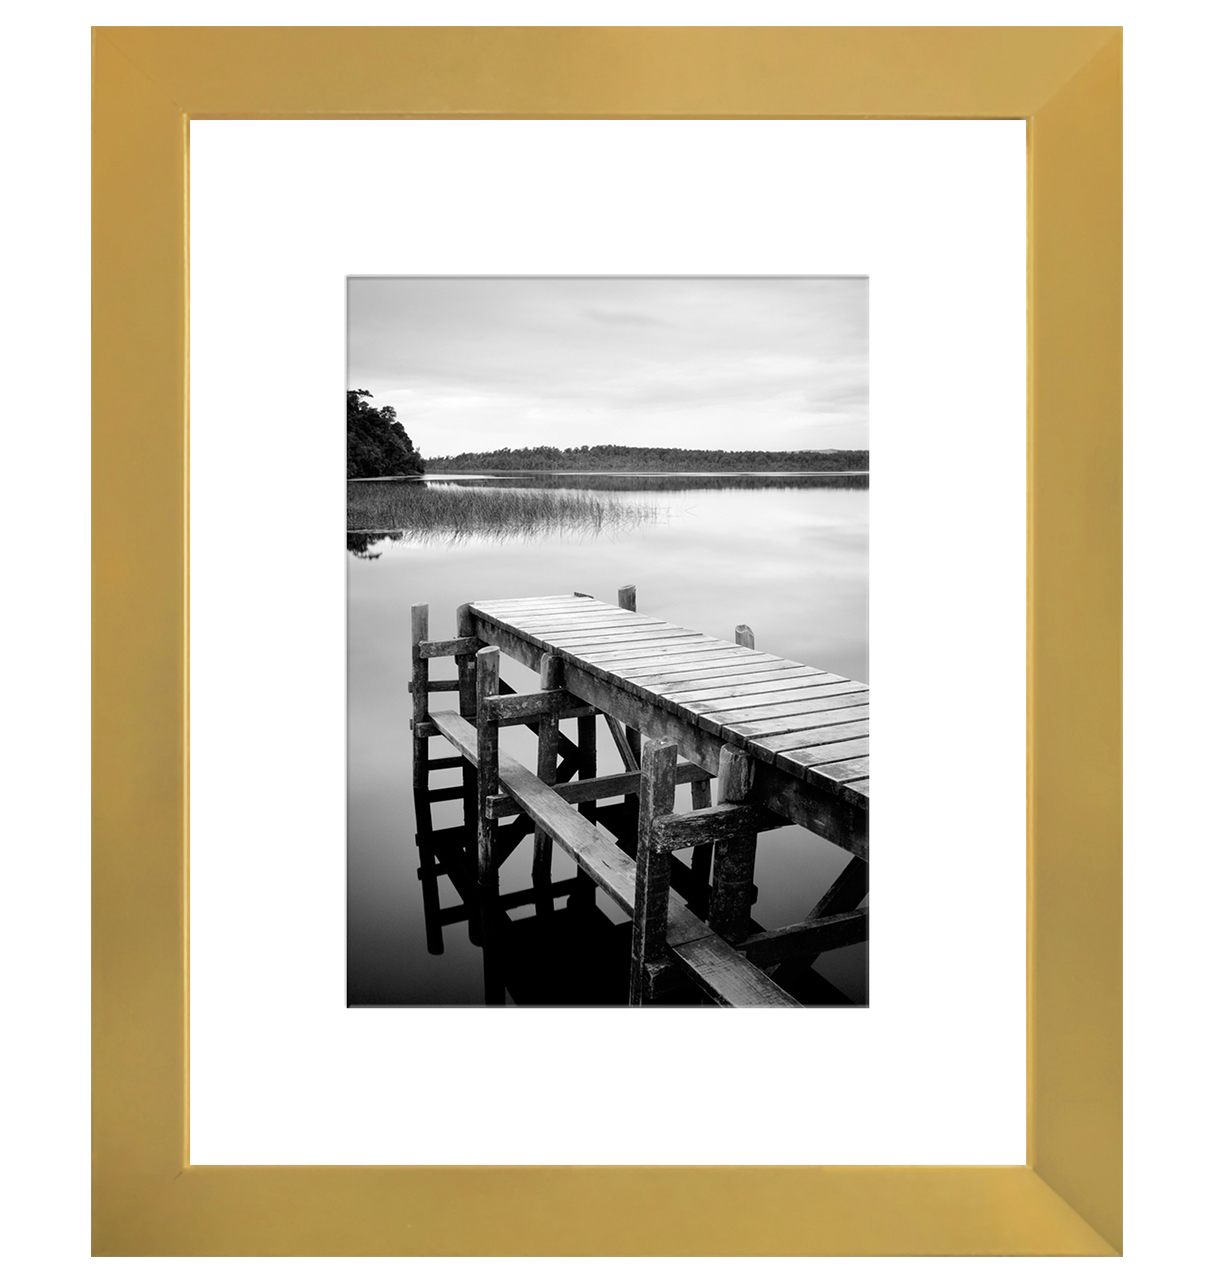 8x10 Gold Picture Frame - Display Photos 5x7 w/ Mat or 8x10 w/o Mat